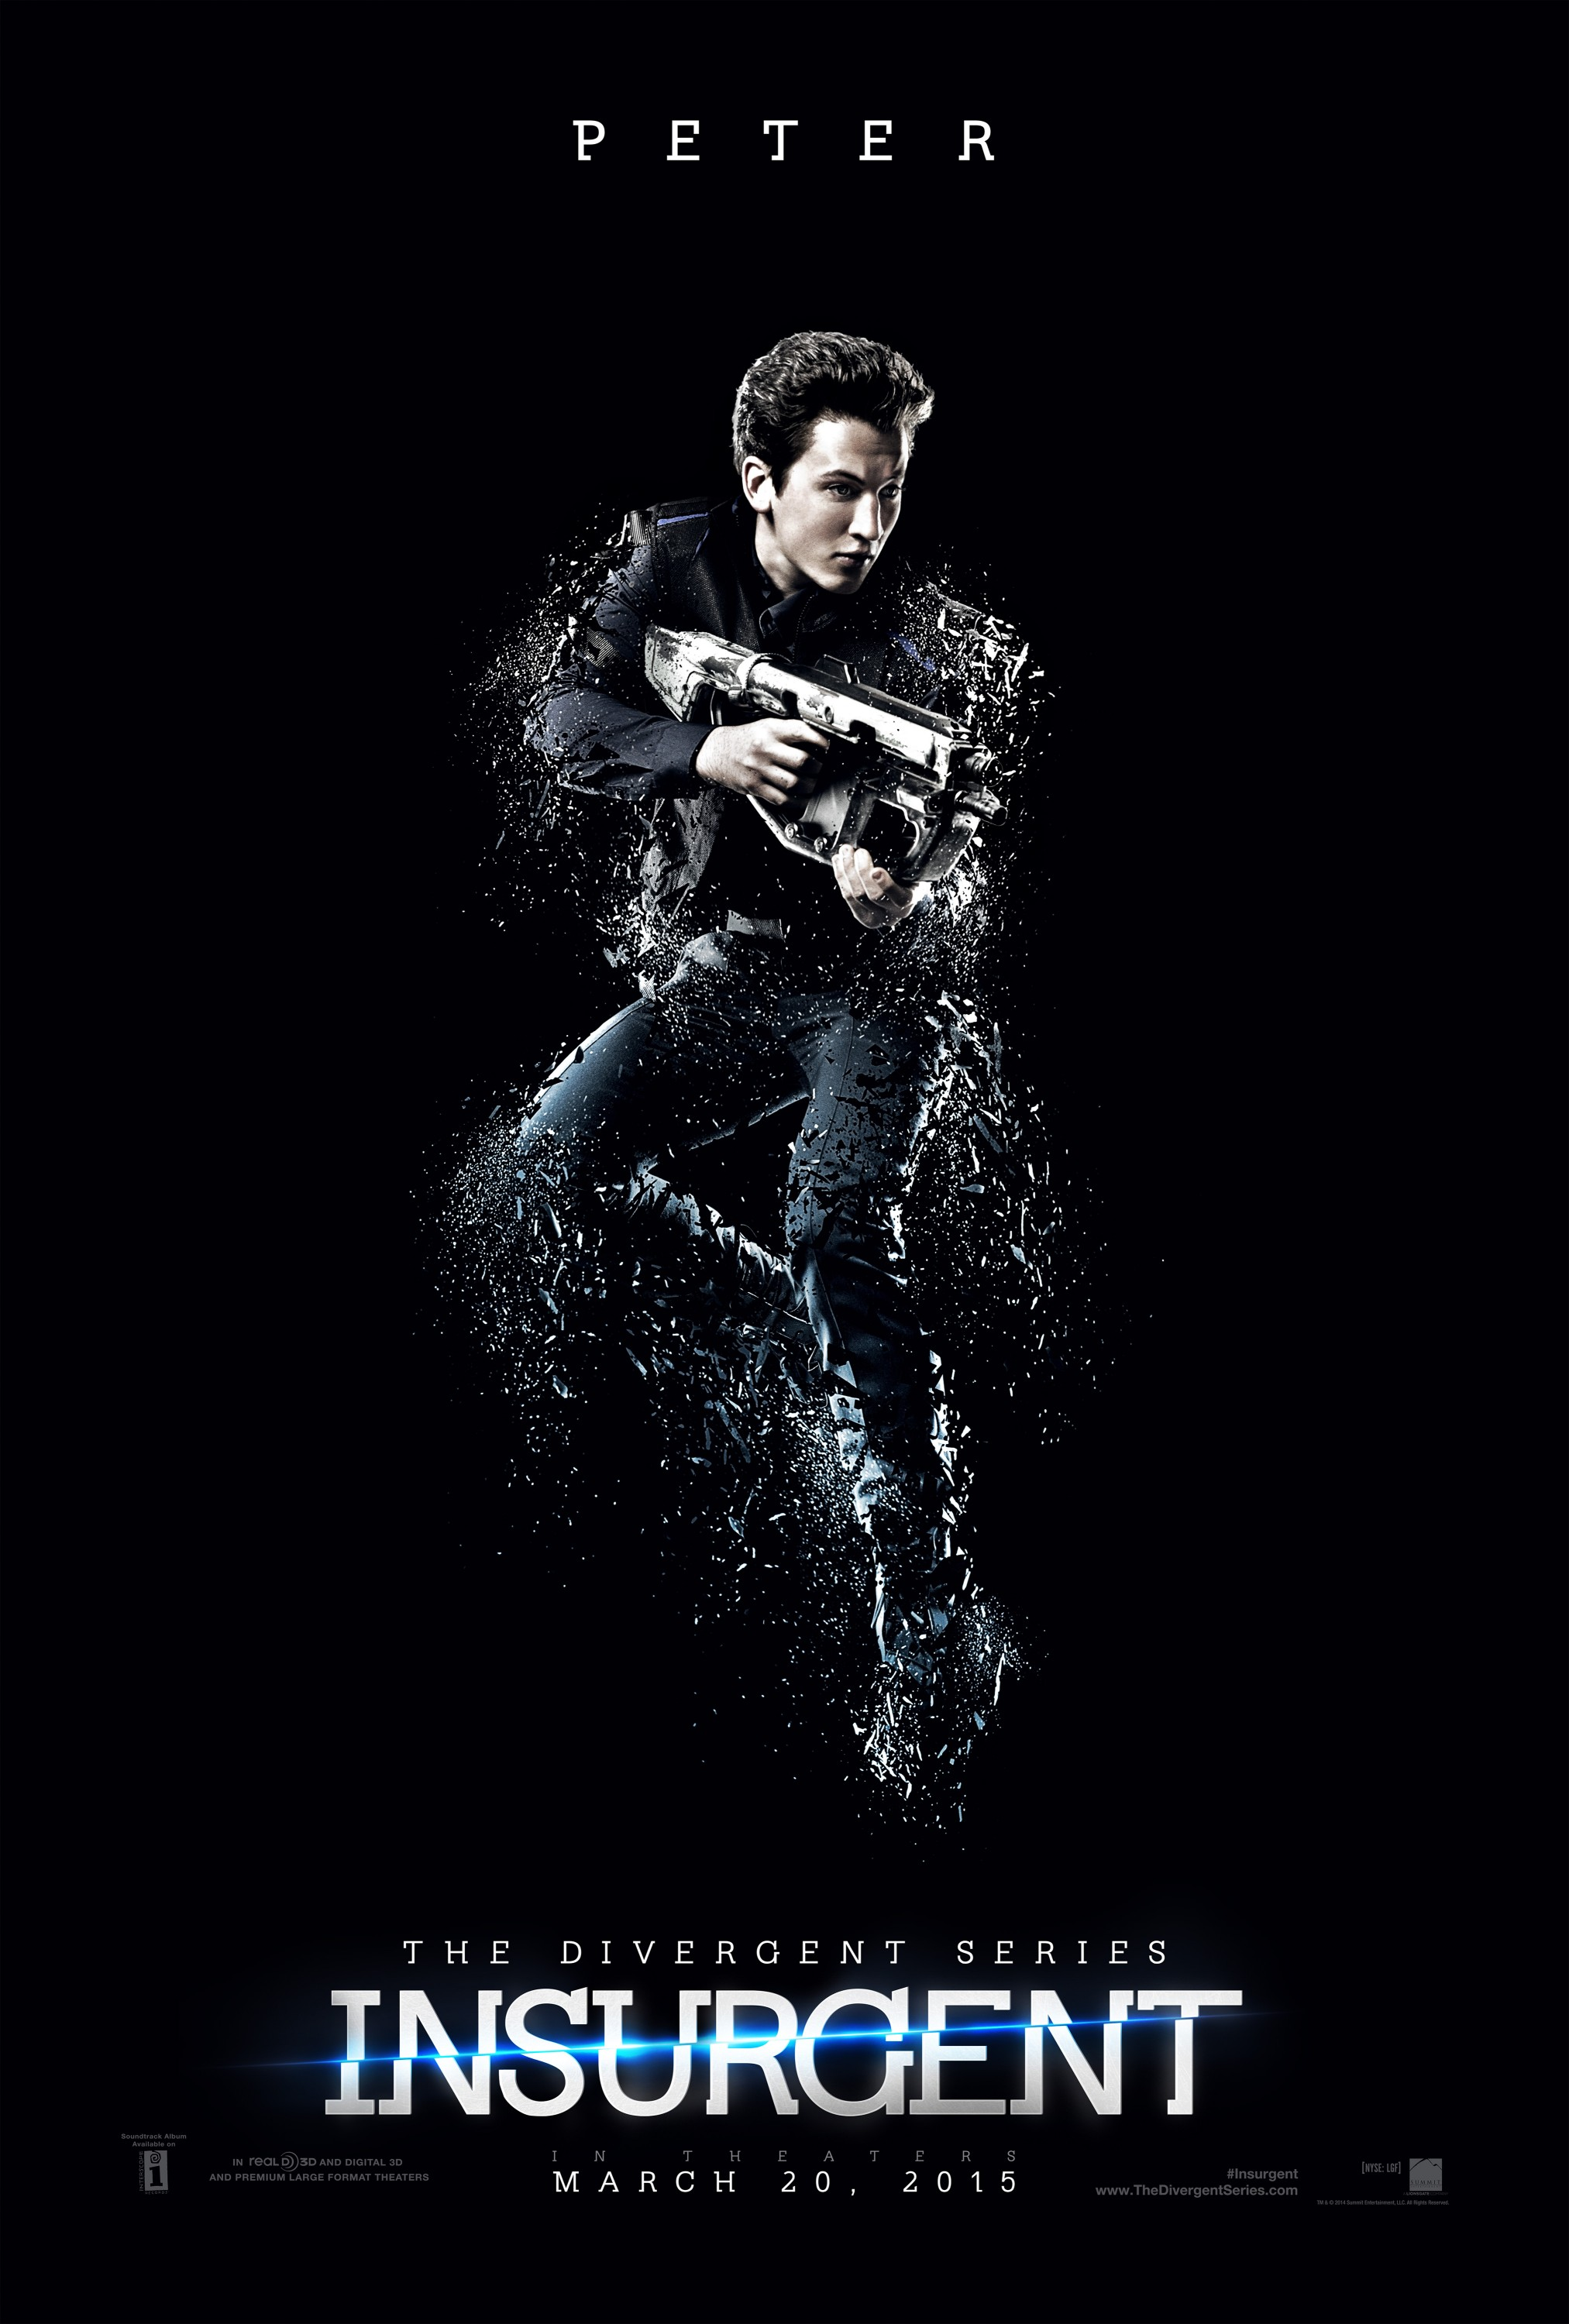 Insurgent-Official Poster XXLG-30OUTUBRO2014-03